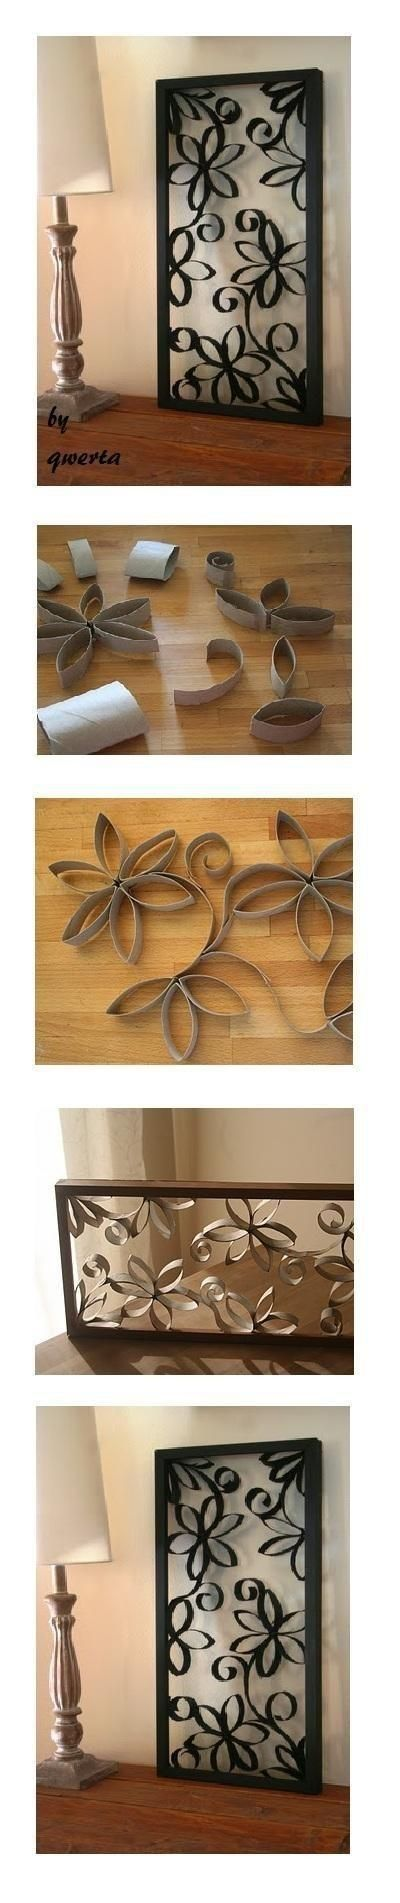 Wall decoration with toilet paper rolls can be really fun and very nice...